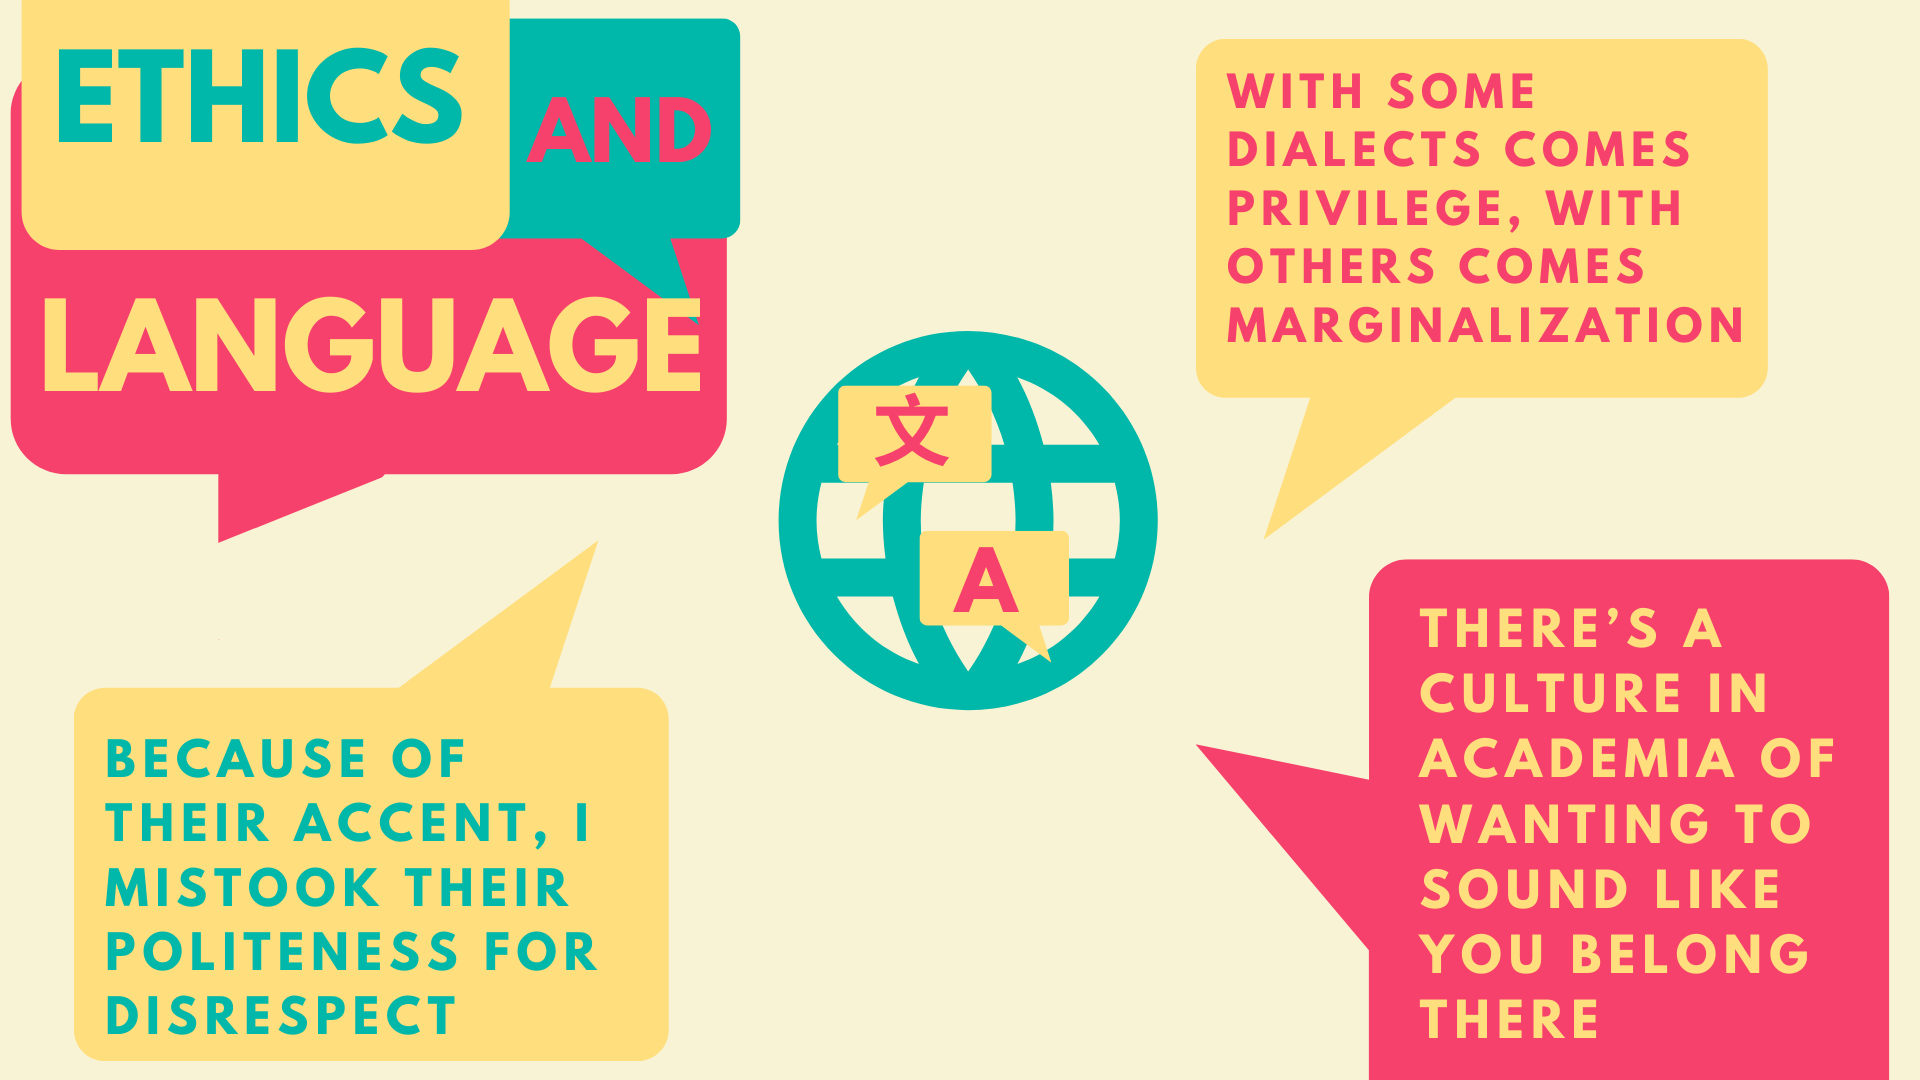 """A graphic containing three colorful speech bubbles with a globe at the center. The quotes in the speech bubbles, taken from this week's couching, are as follows: """"Because of their accent, I mistook their politeness for disrespect"""", """"With some dialects comes privilege, with others comes marginalization"""", and """"There's a culture in academia of wanting to sound like you belong there""""."""